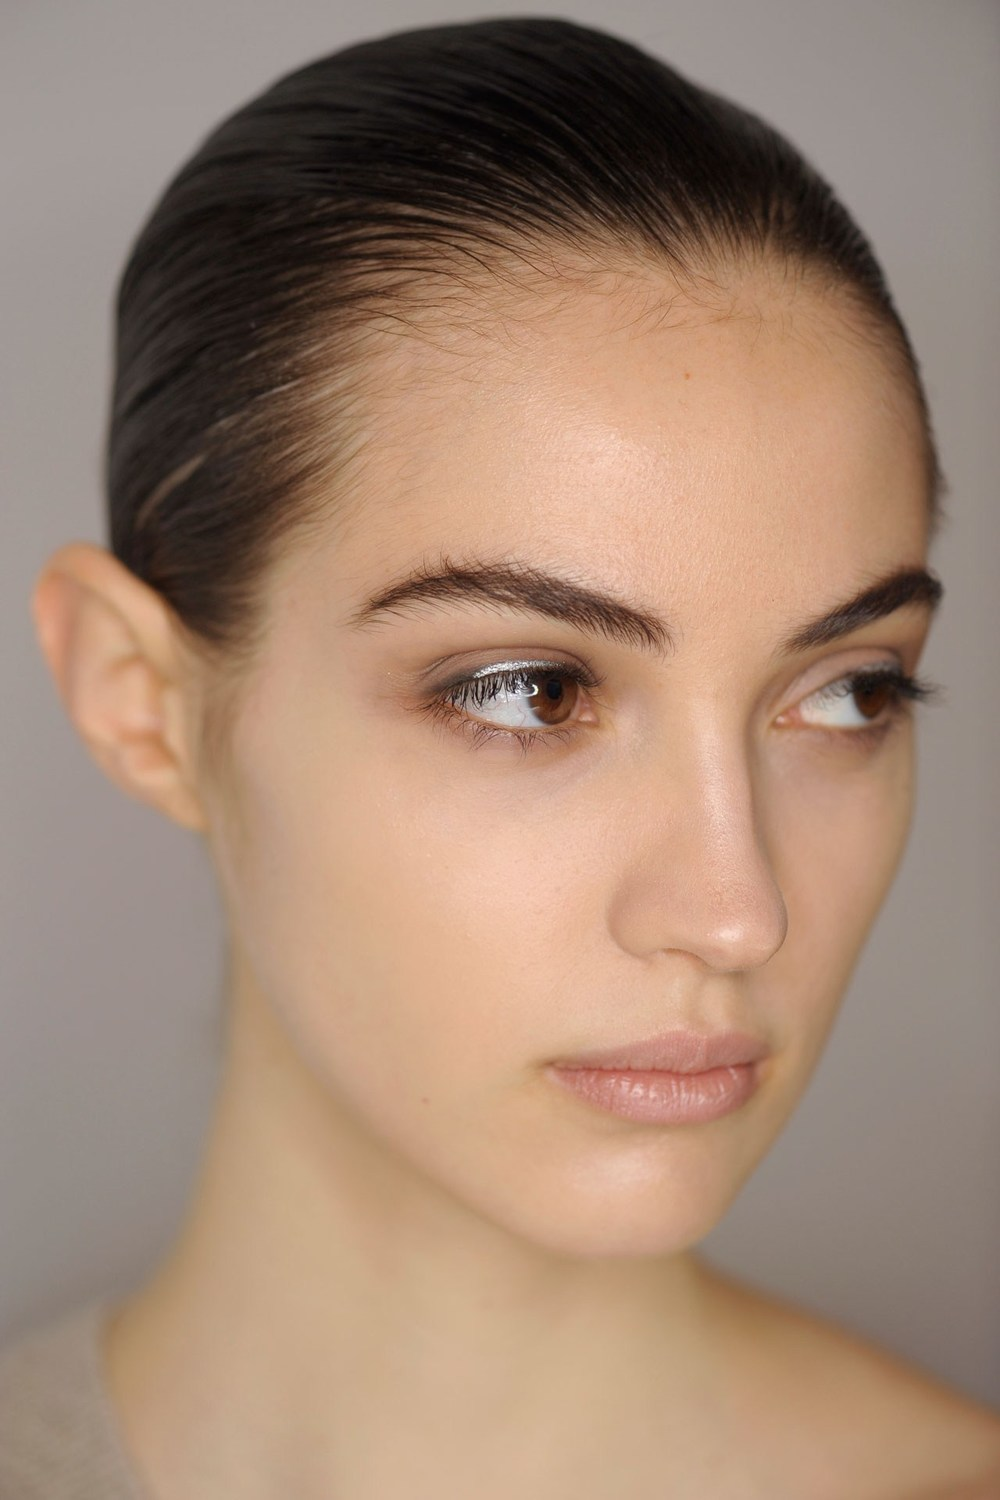 Jil Sander‎ - Lisa Eldridge kept models' skin fresh at Jil Sander‎, with grey-lined eyes offset by a flash of silver.